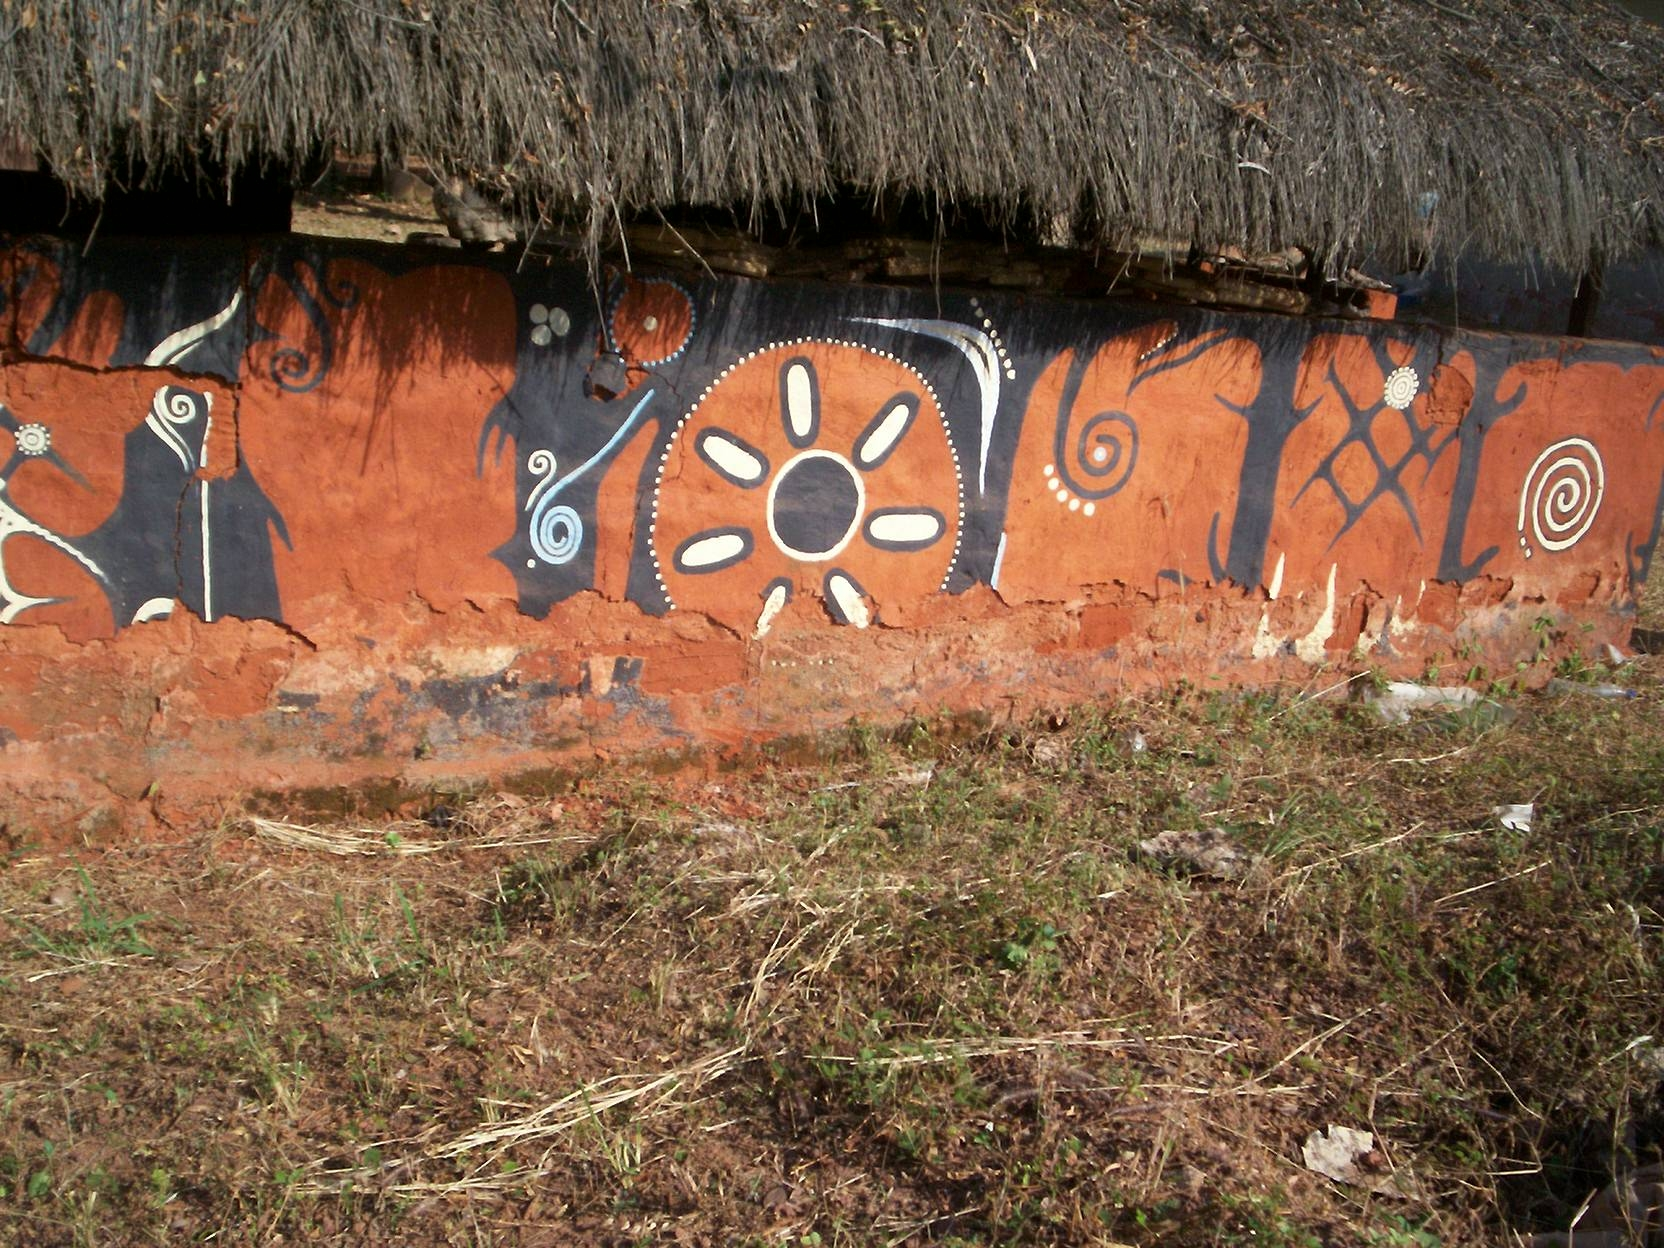 A typical ancient wall painting in parts of southeastern Nigeria, which could be portraying astronomical information. Photo: Johnson Urama